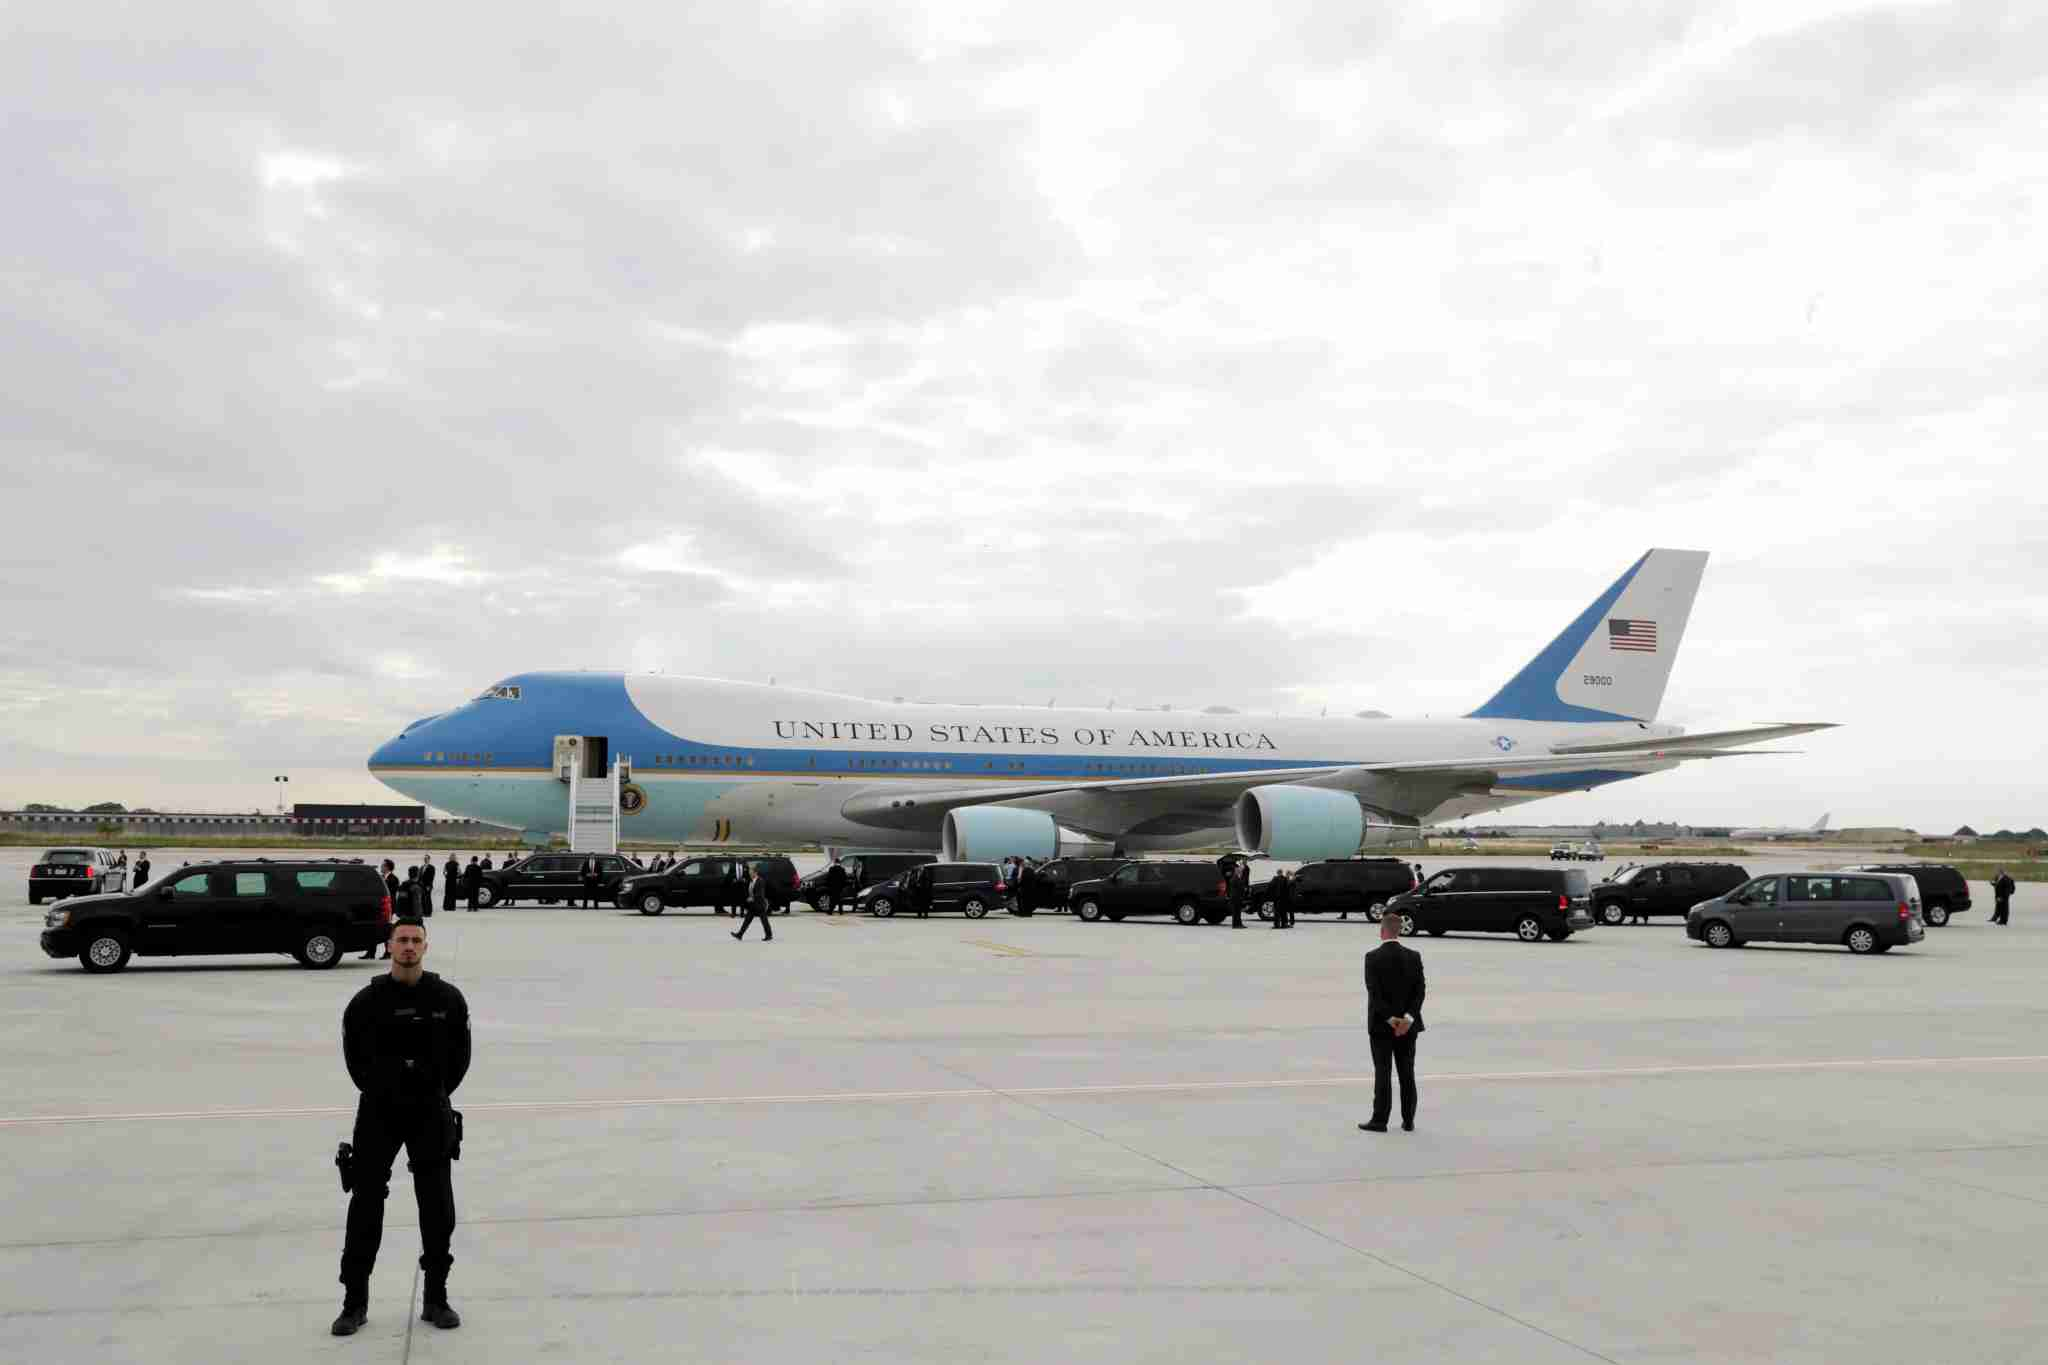 Air Force One after it landed on July 13, 2017 at Paris